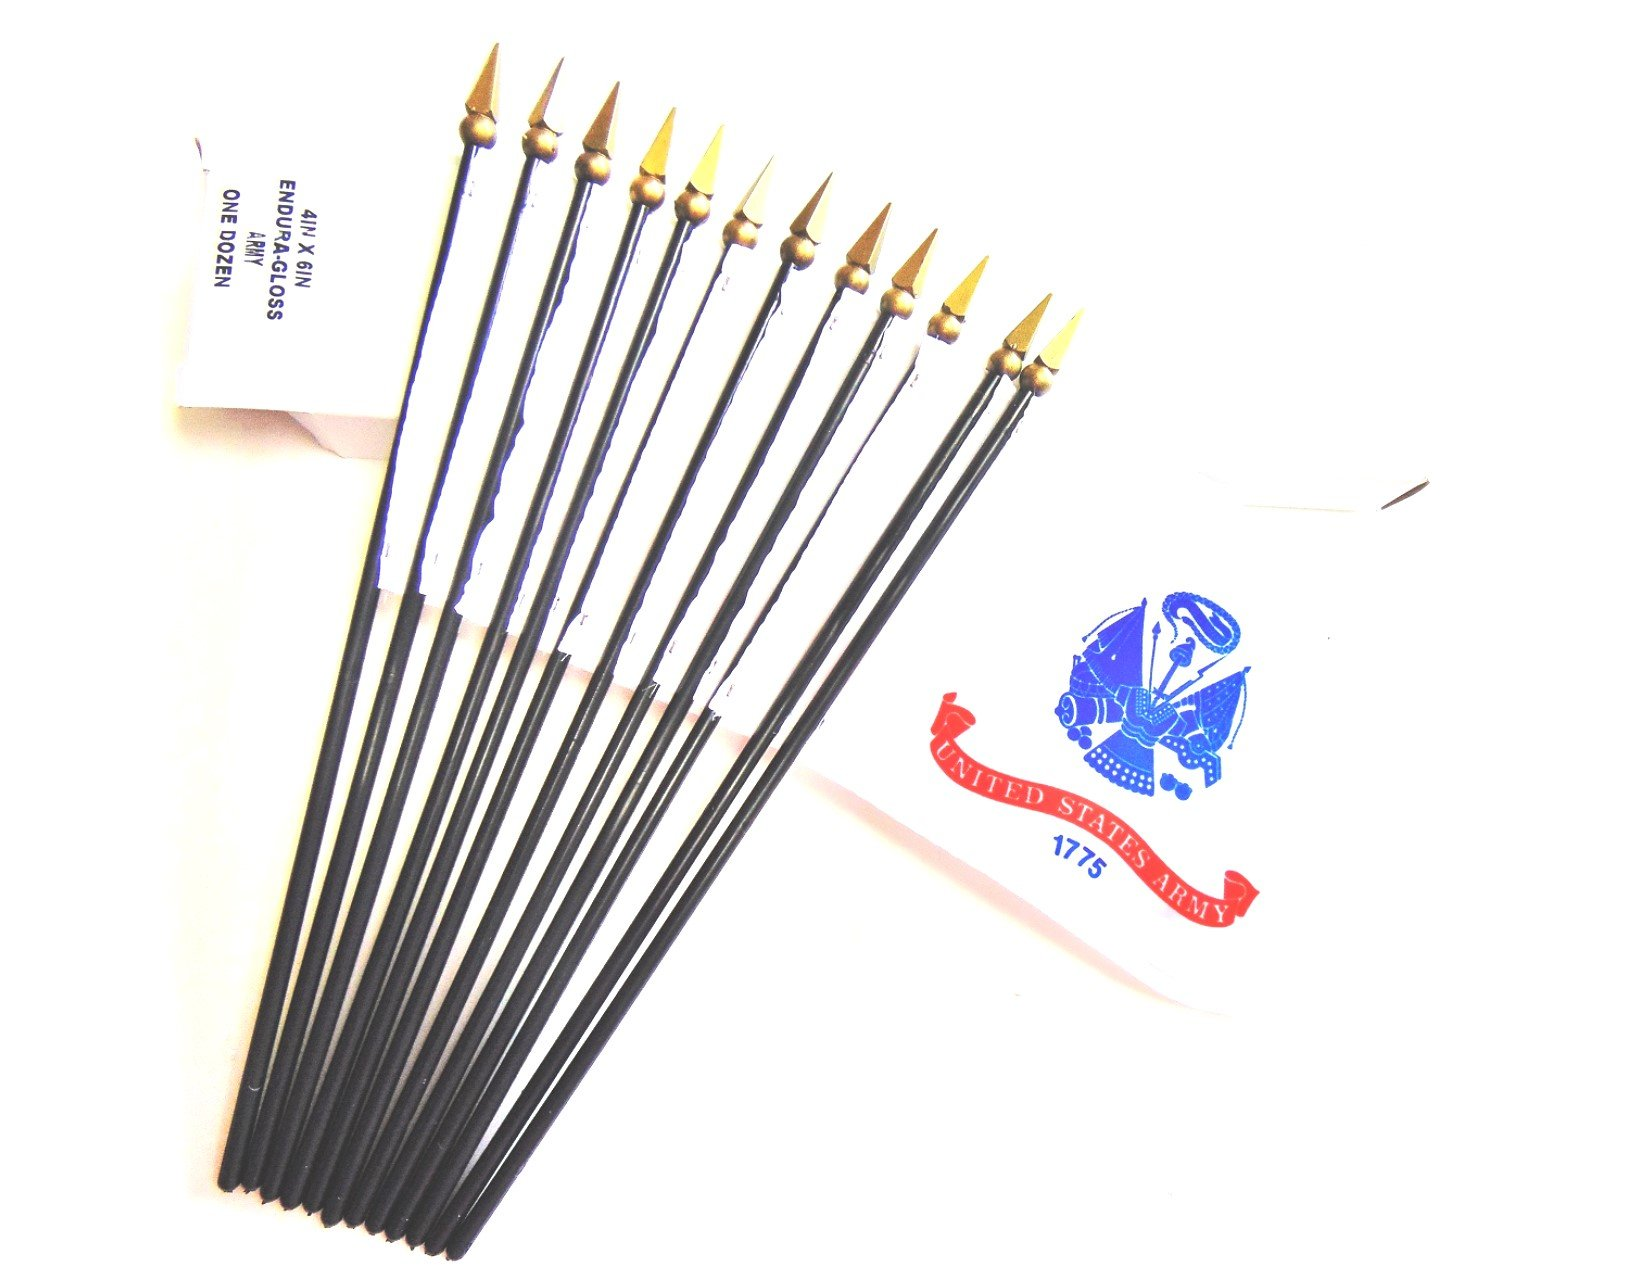 MADE IN USA!! Box of 12 US Army 4''x6'' Miniature Desk & Table Flags; 12 American Made Small Mini United States Army Flags in a Custom Made Cardboard Box Specifically Made for These Flags